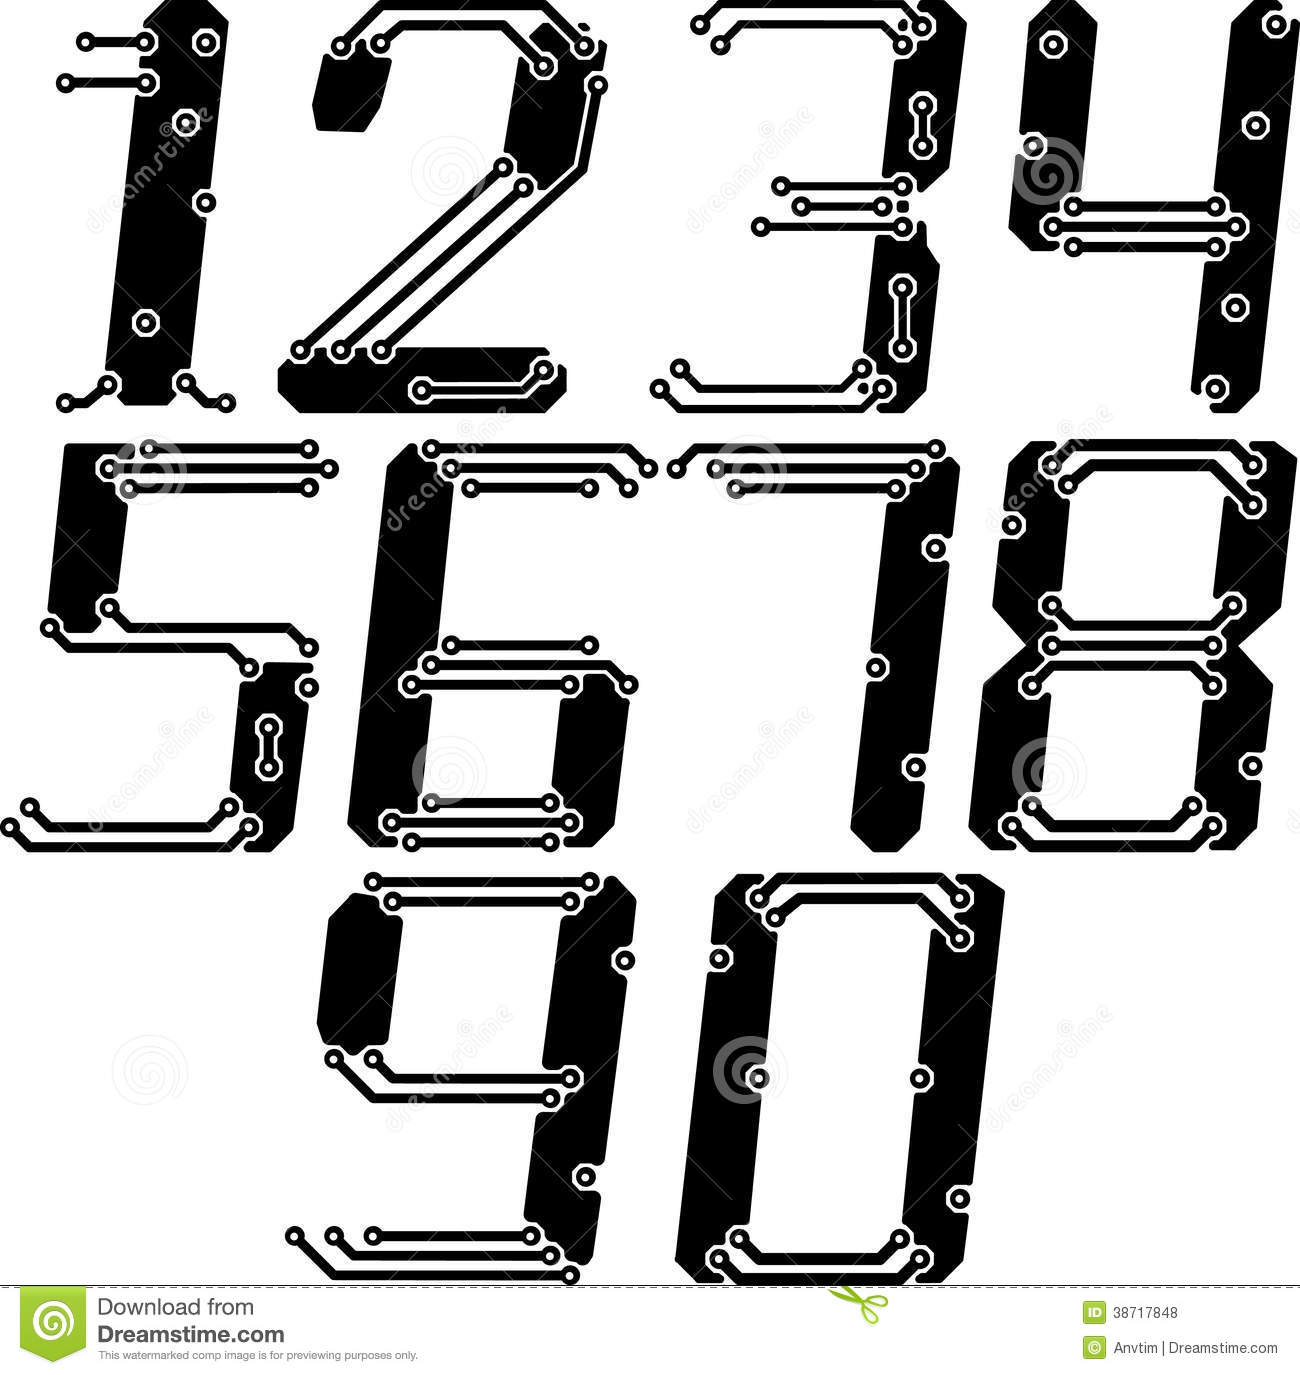 Stylish Pcb Electric Wires Numbers In Italics Royalty Free